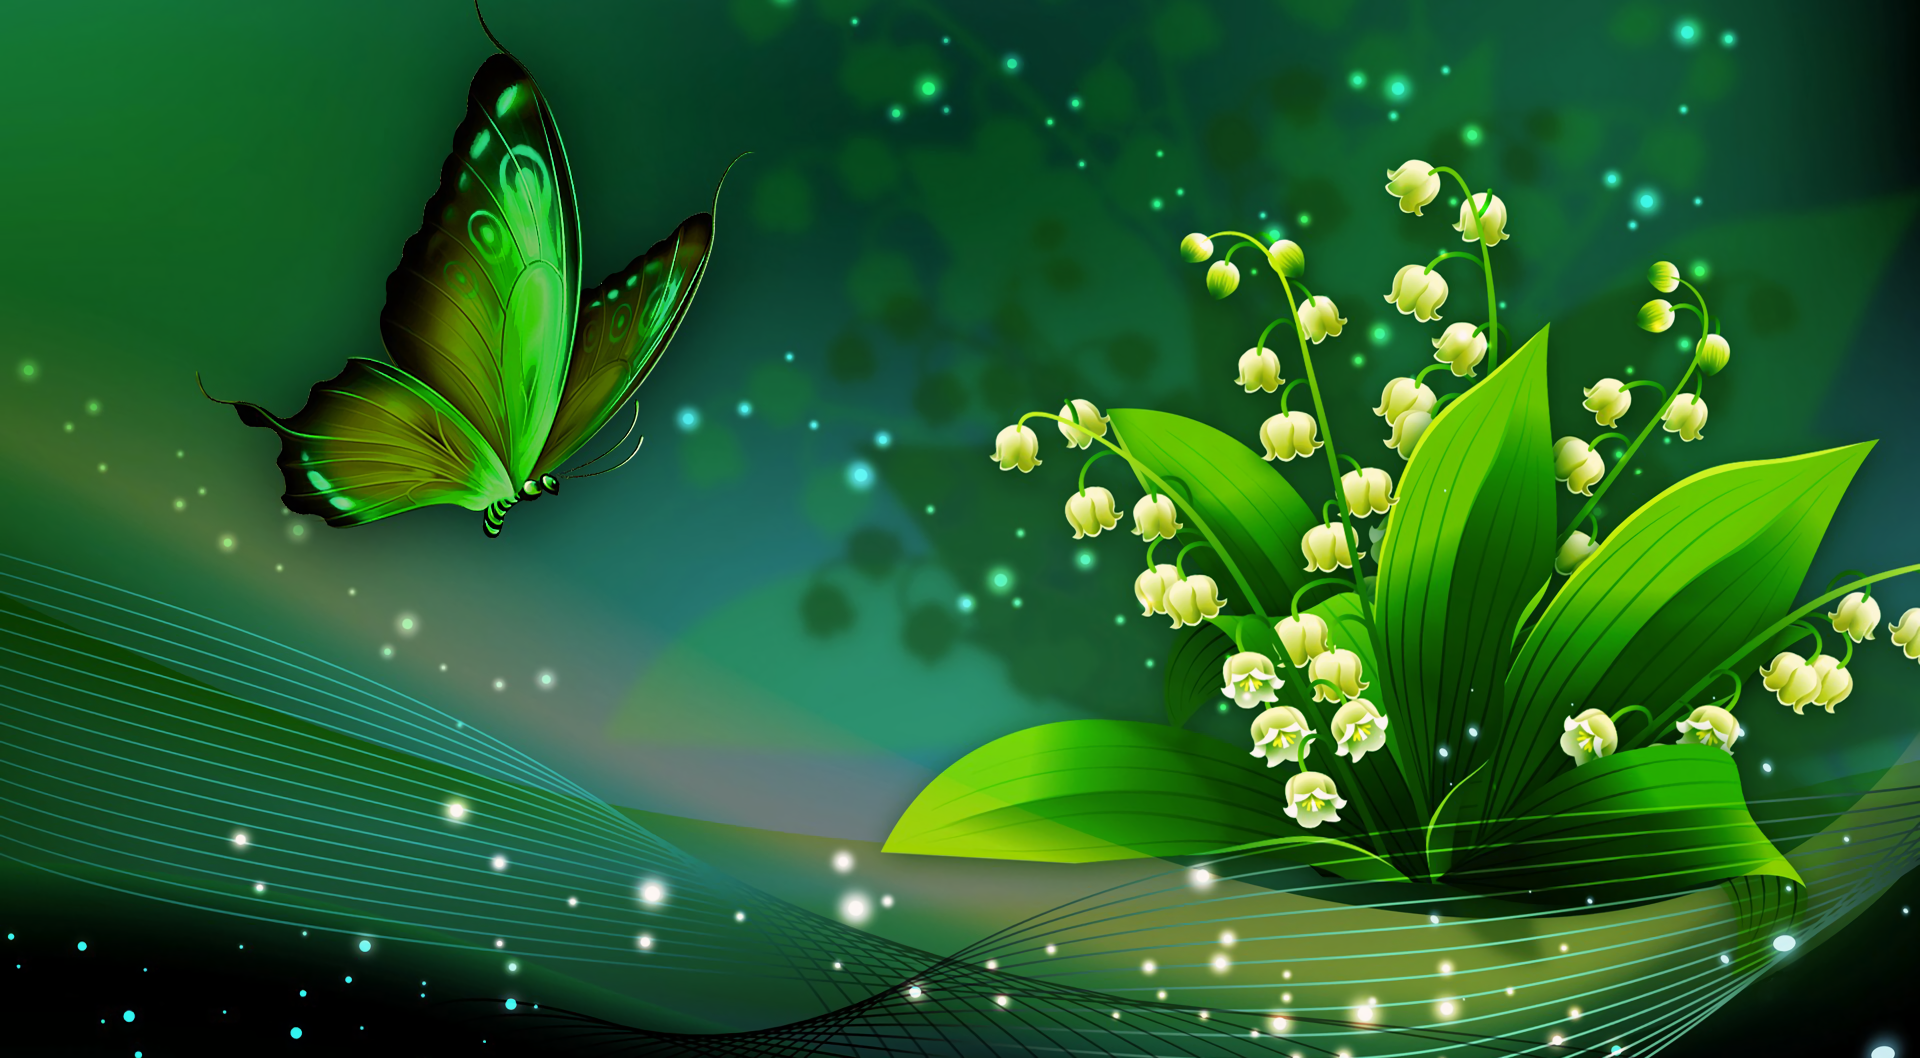 Wallpapers ID:702698